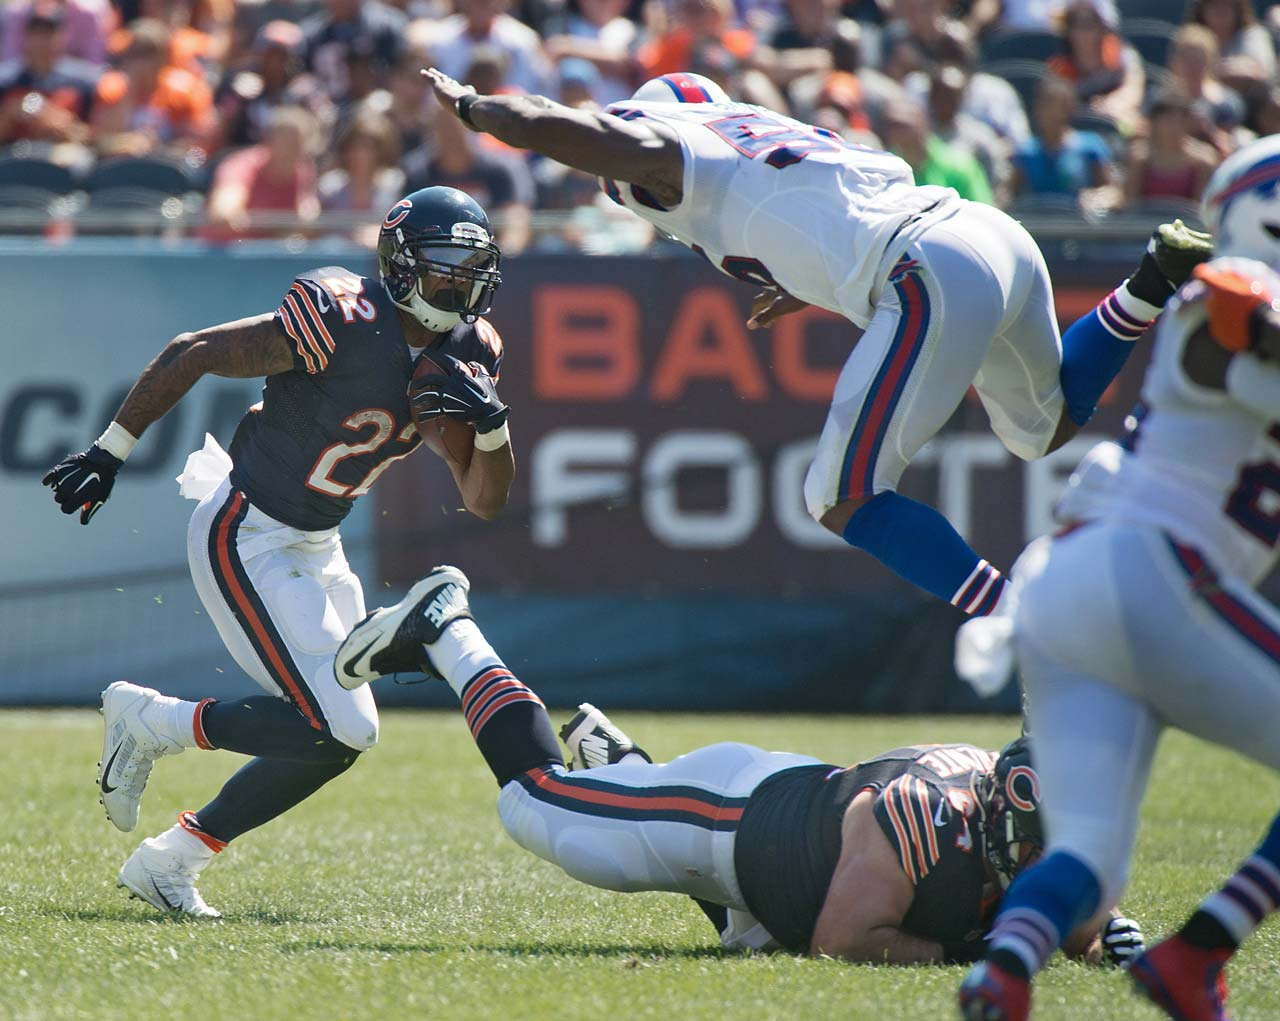 Matt Forte had 17 carries for 82 yards in Chicago's overtime loss to Buffalo.